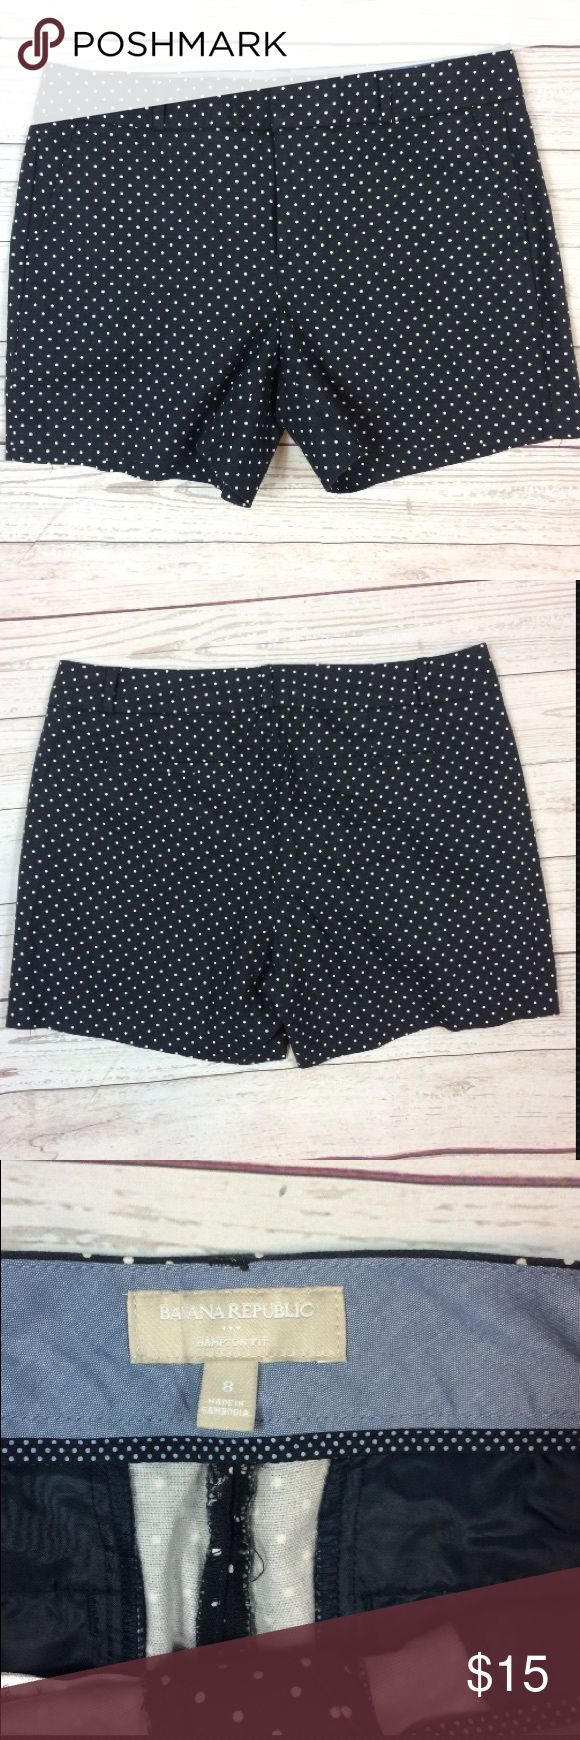 """Banana Republic Navy Blue Polka Dot Shorts 8 Banana Republic Navy Blue Polka Dot Shorts Womens Size 8 Hampton Fit  All fake products  Check out my other items for more sizes and styles!  Measurements are laying flat Waist 16"""" Length 14.5""""   Condition Description: Gently used  Inventory # H15 Banana Republic Shorts"""